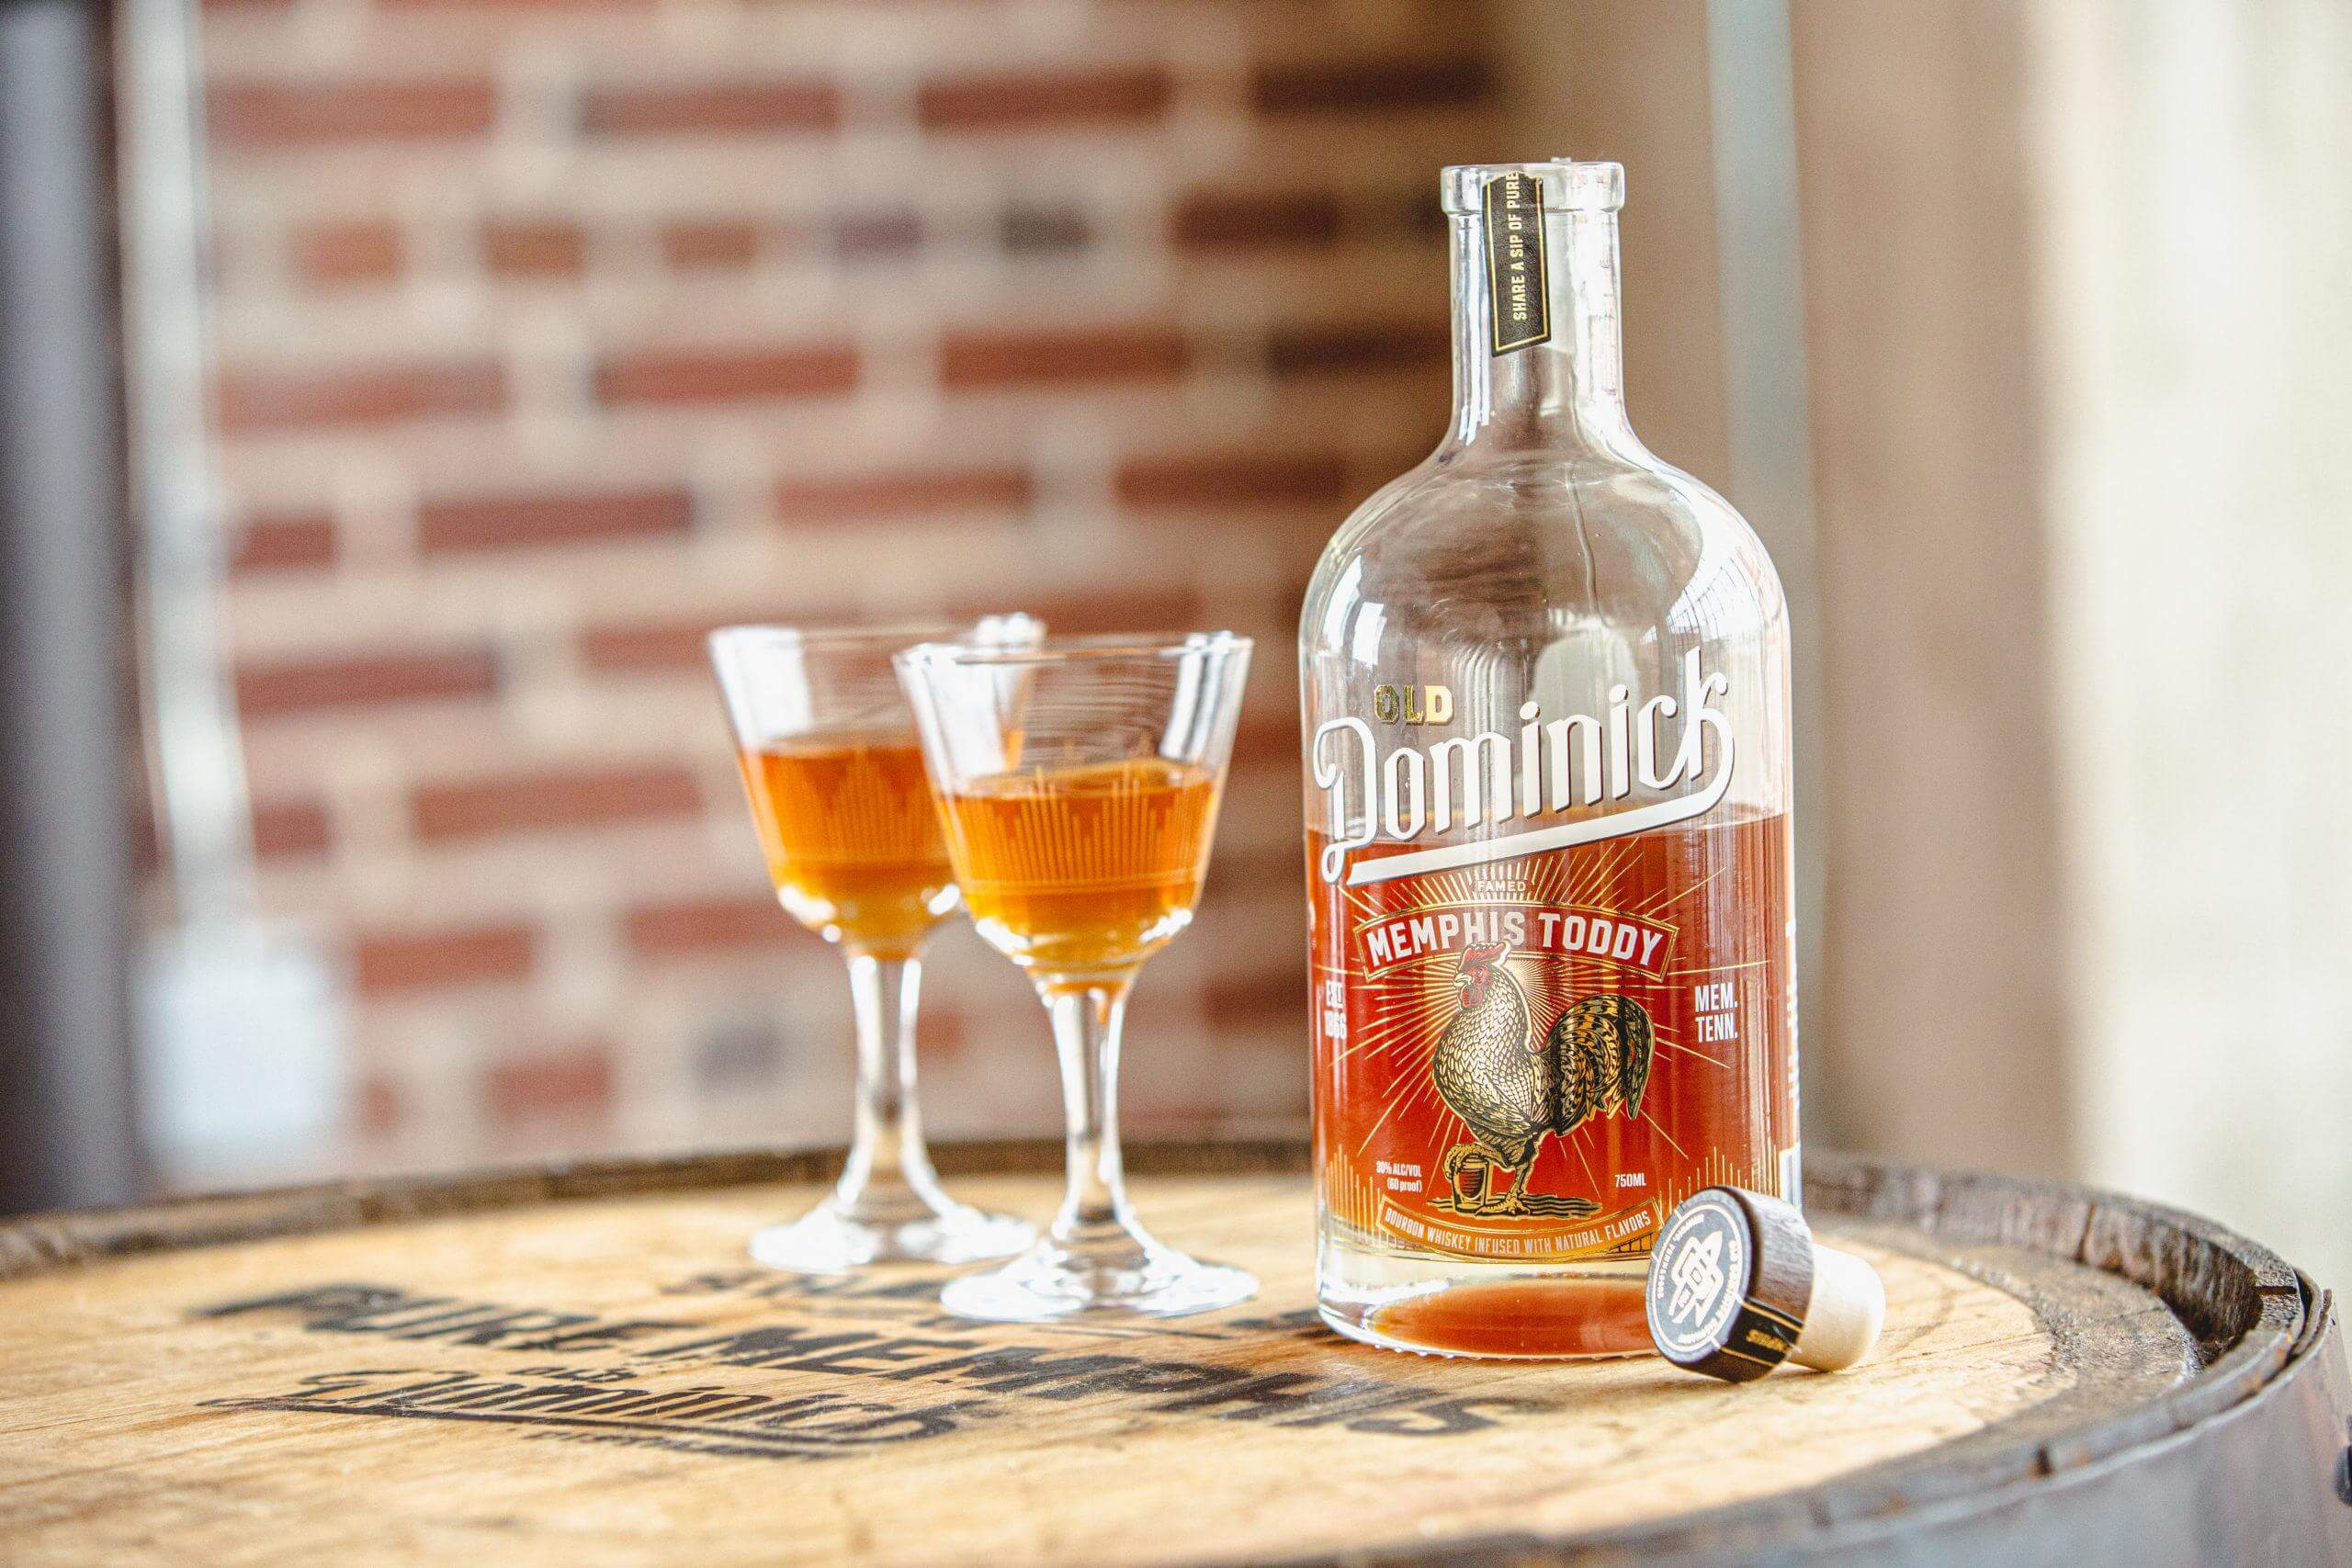 Old Dominick Memphis Toddy bottle and two glasses of toddy